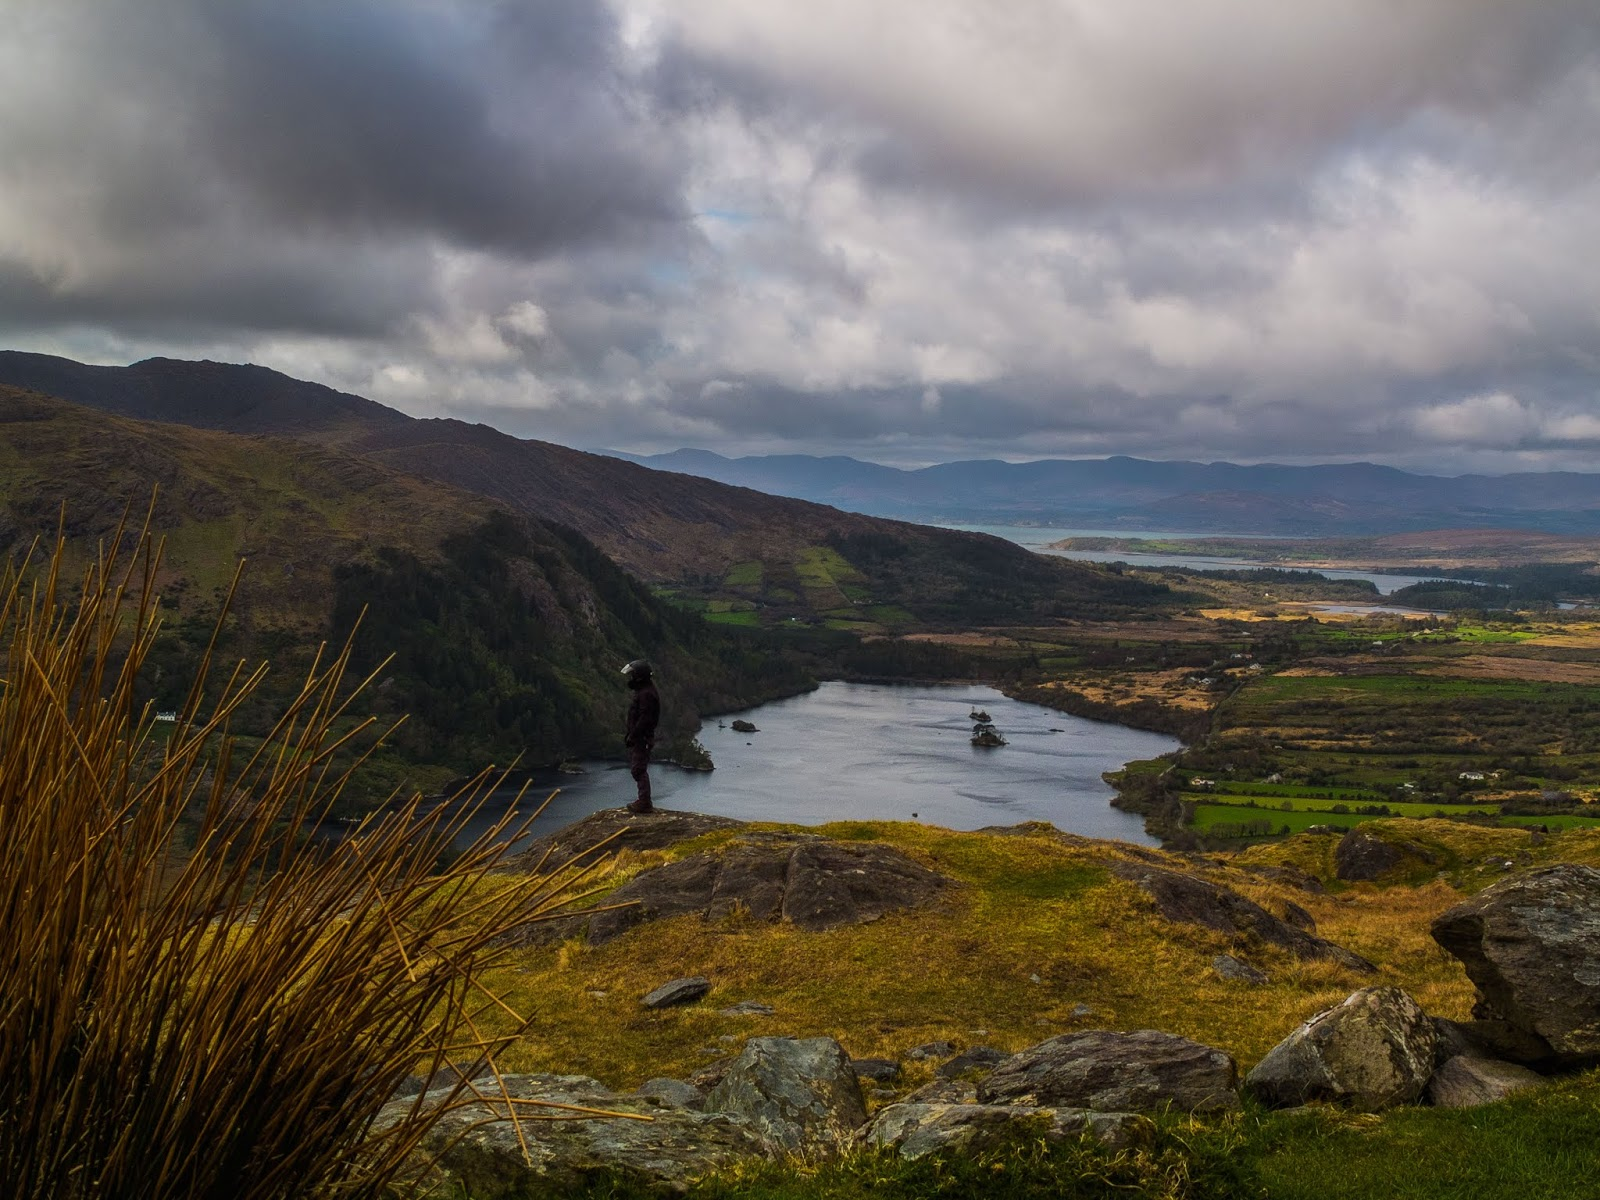 A freshwater lake in the southwest of Ireland, located on the Beara Peninsula in County Kerry.